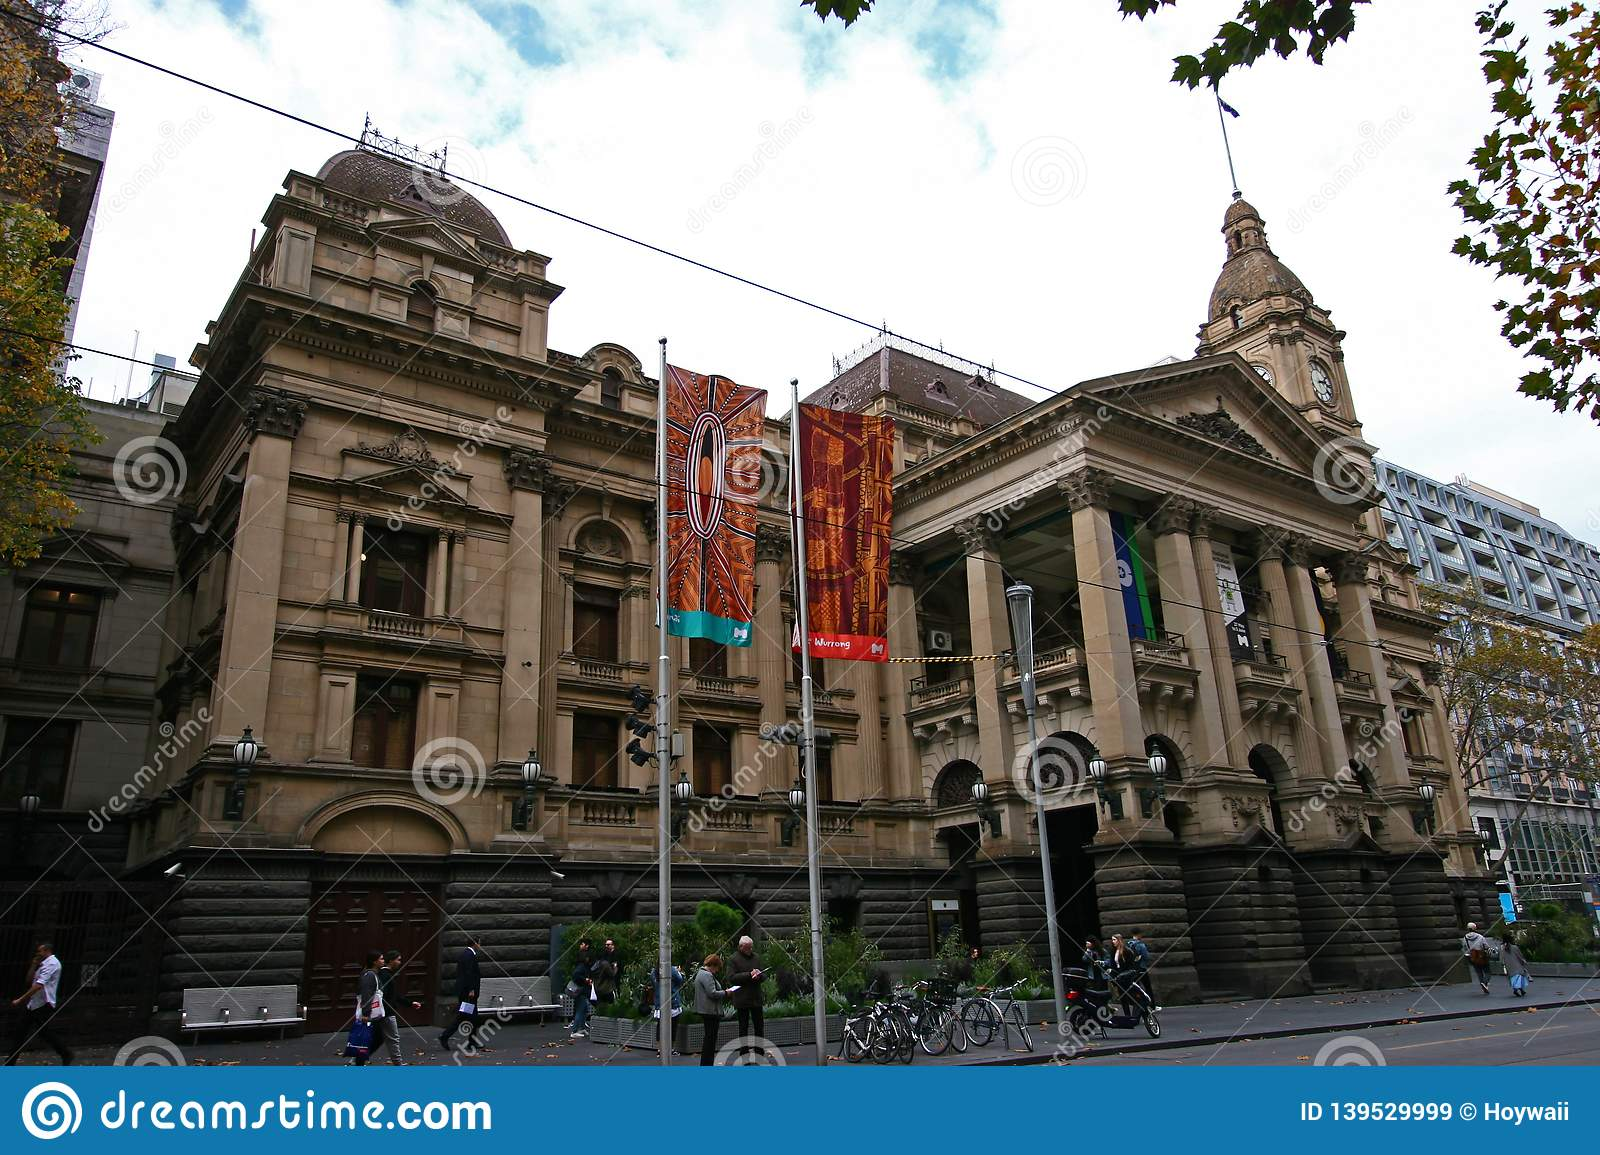 Classic And Historic Stone Exterior Of Melbourne City Hall With